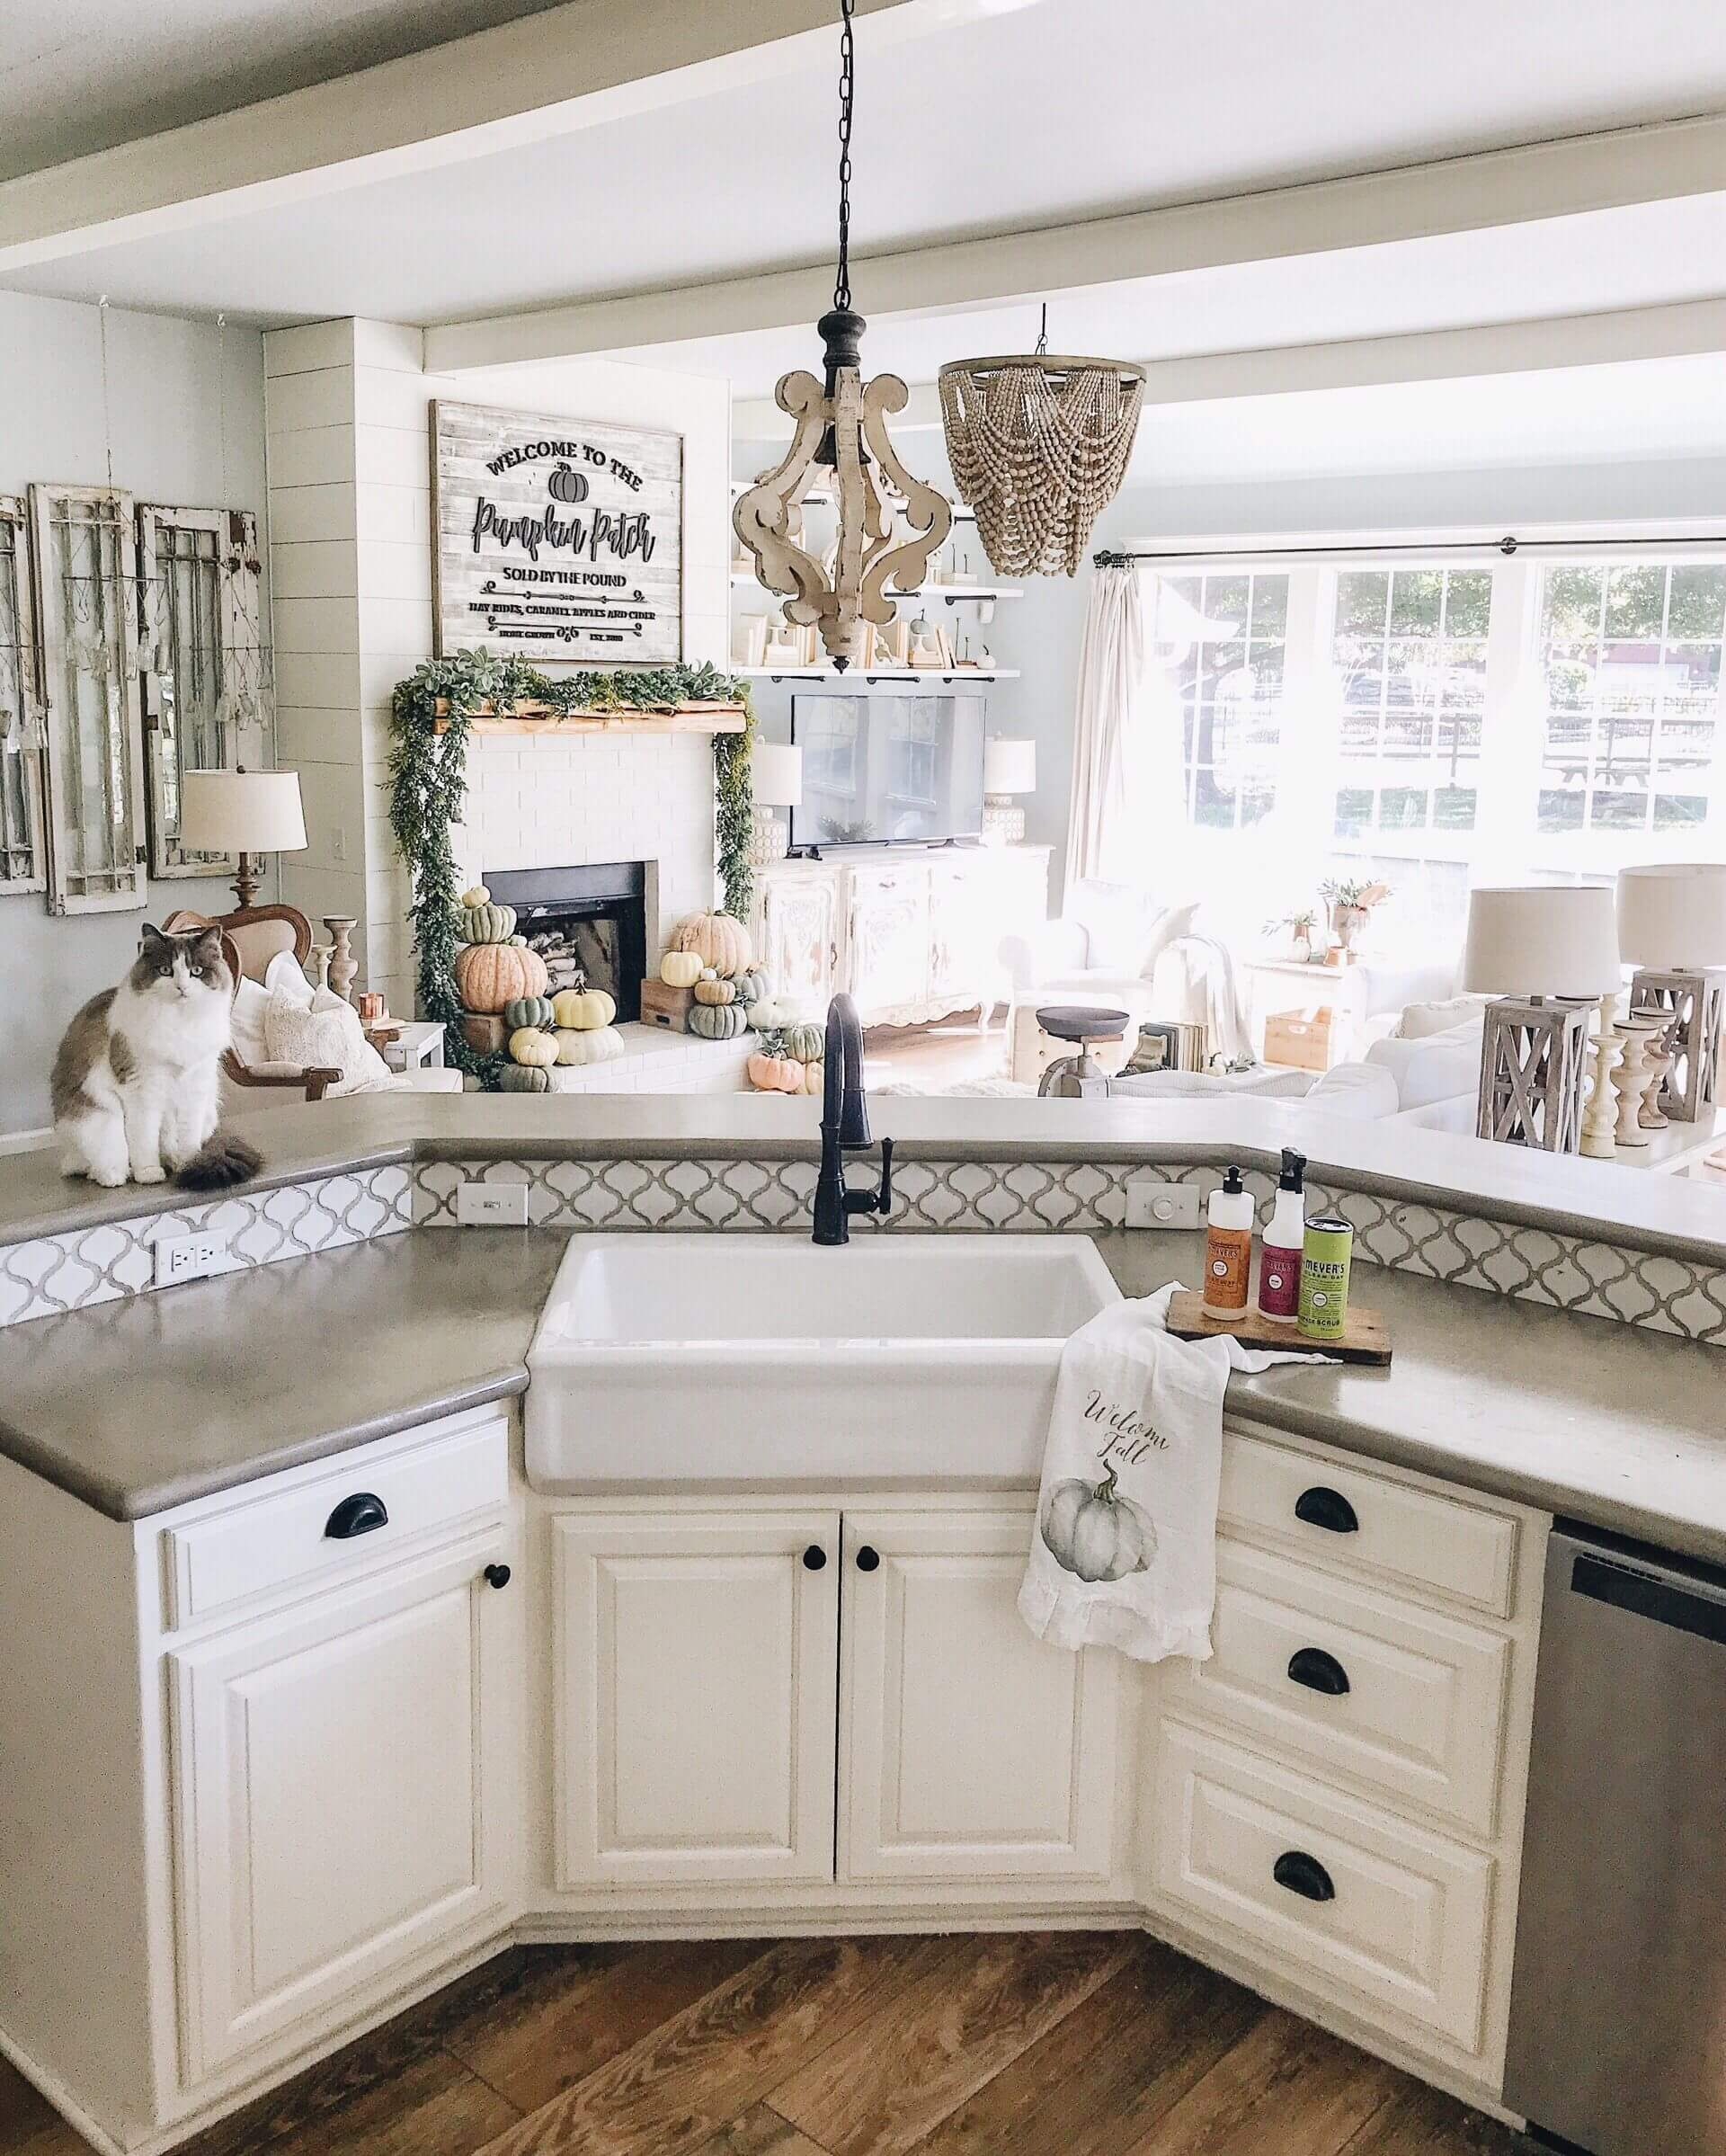 Farmhouse Sink in the Island Corner